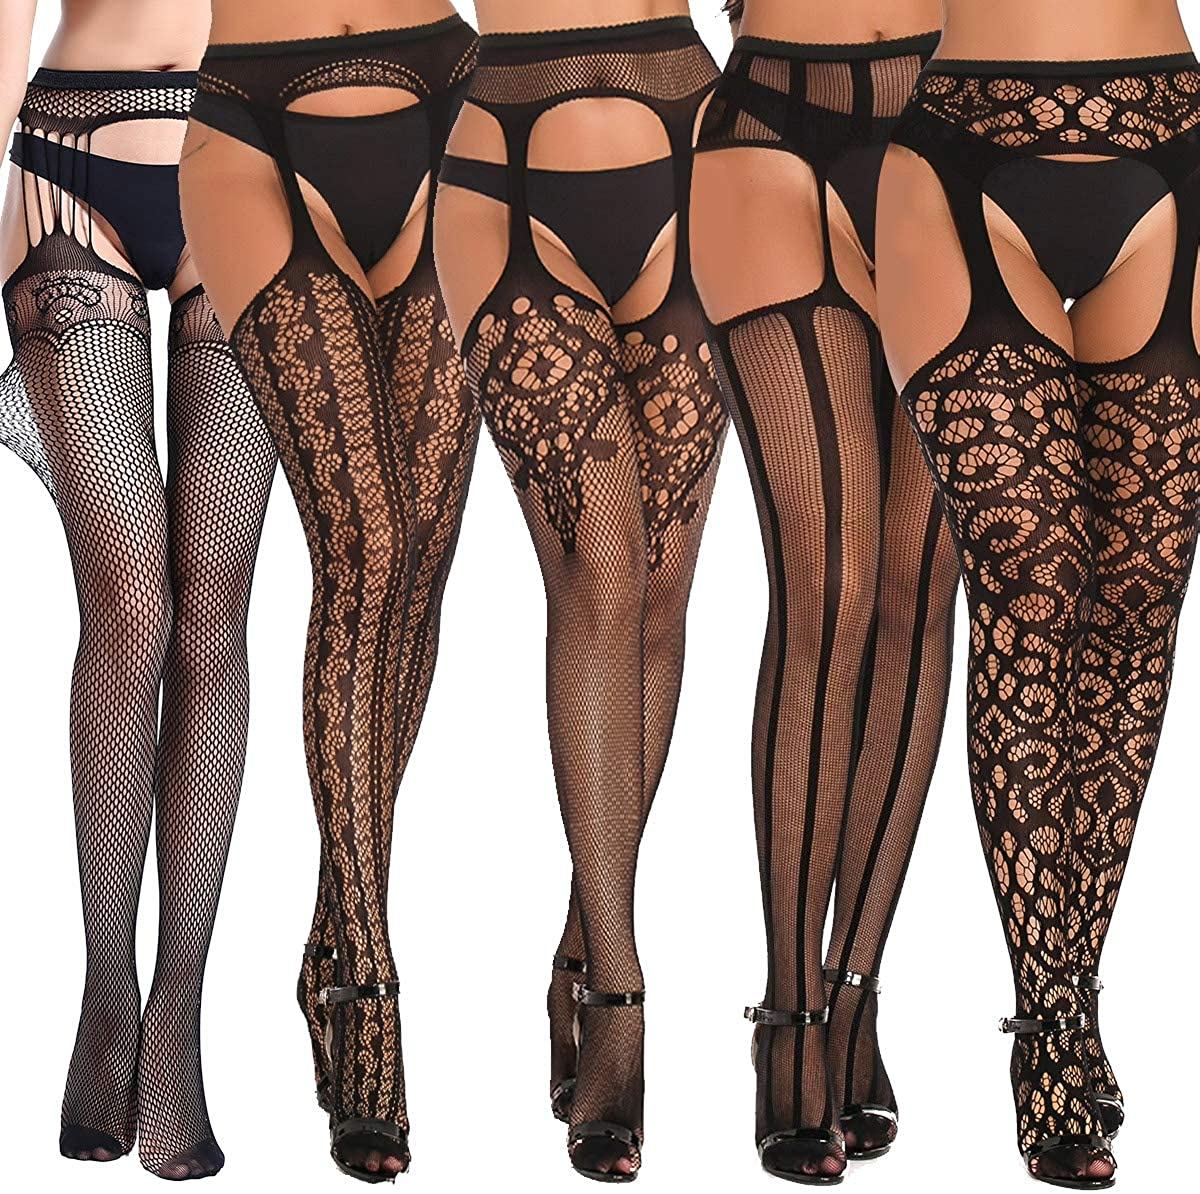 Womens Garter Belts And Stocking Sets Fishnet Thigh High Lingerie Sexy High Waisted Black 5 Pairs